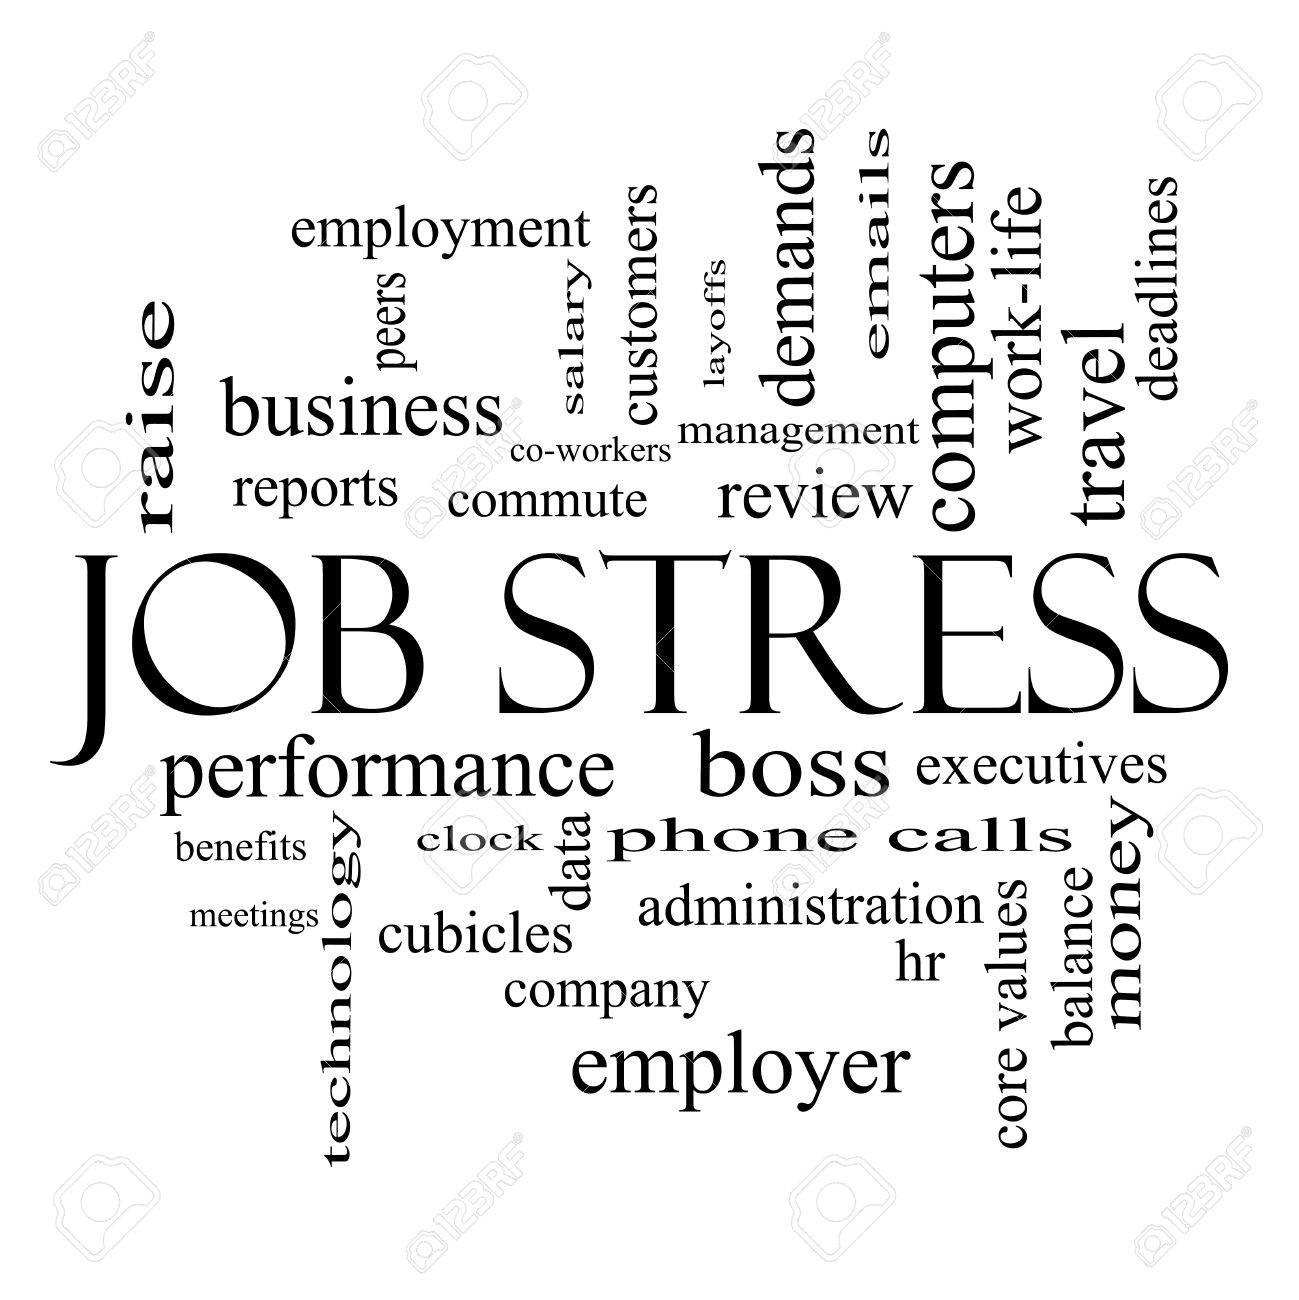 job stress word cloud concept in black and white great terms job stress word cloud concept in black and white great terms such as boss